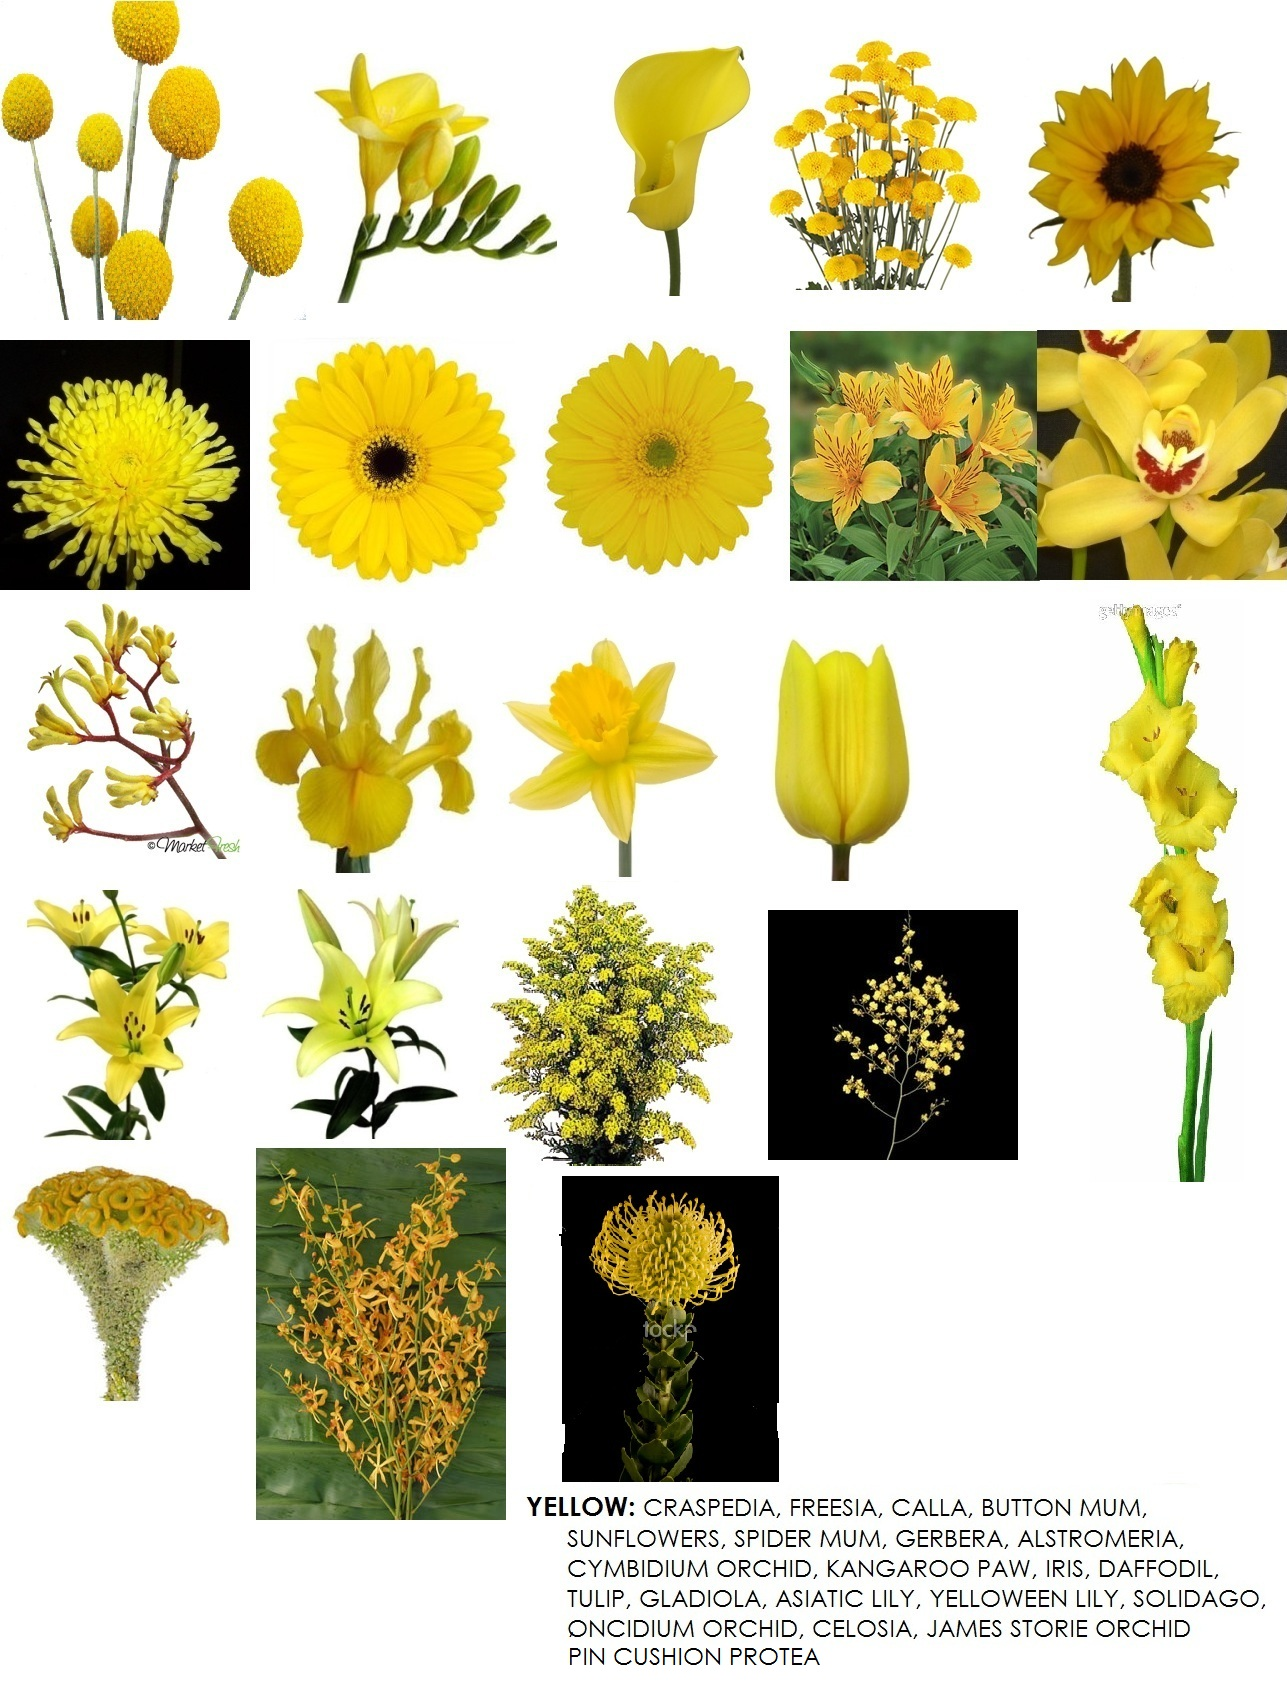 Yellow Flower clipart september flower Flowers Floral yellow Design yellow